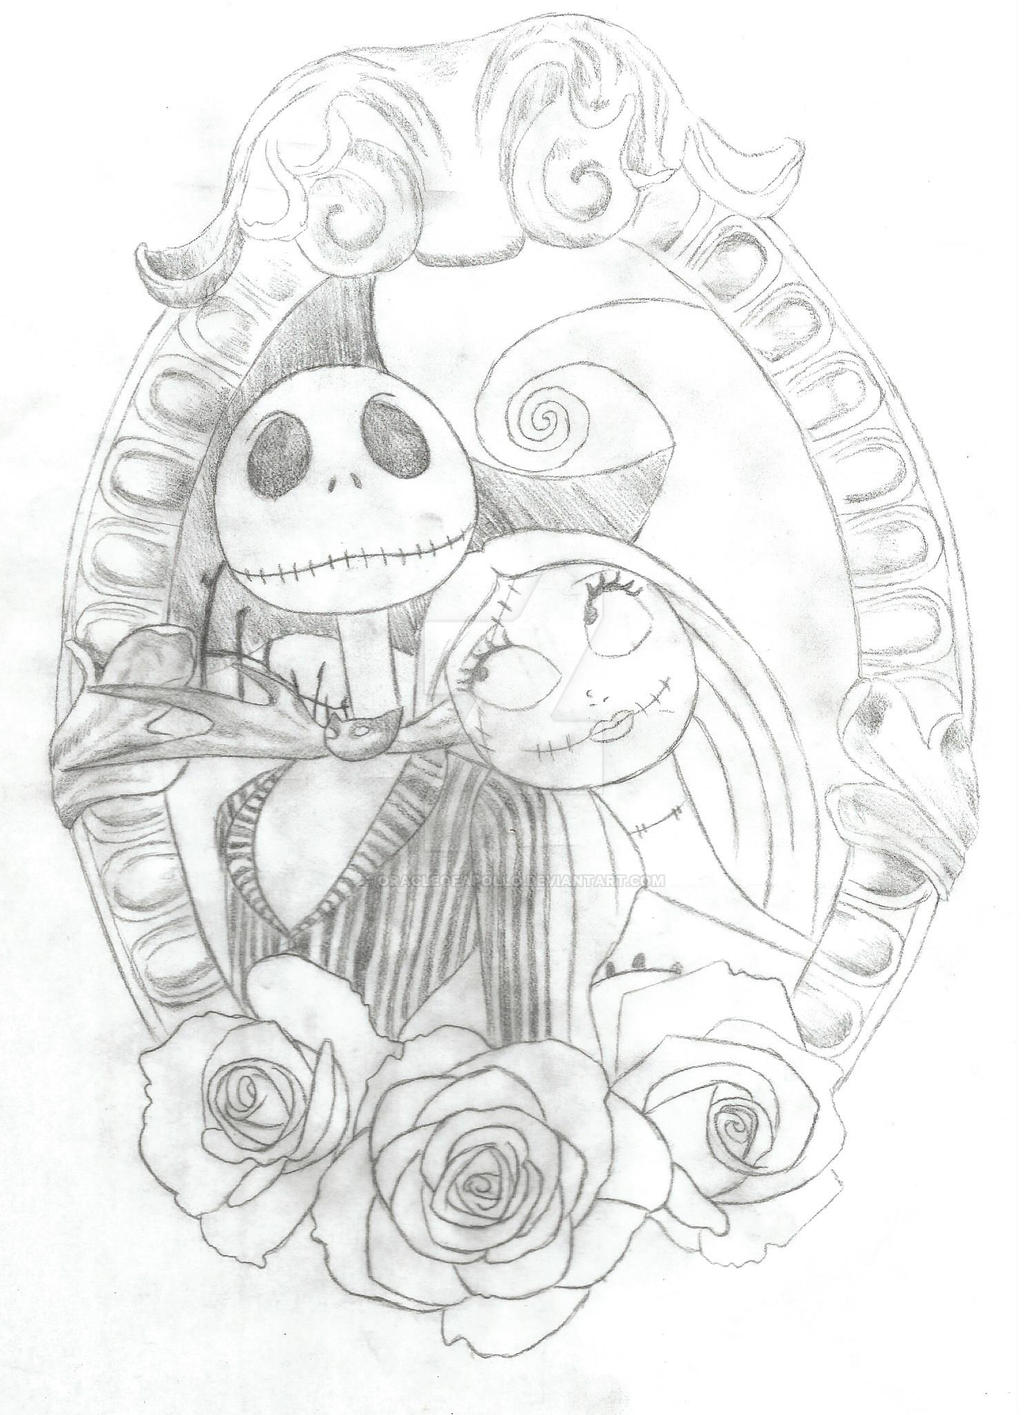 Jack and sally tattoo by oracleofapollo on deviantart for Jack skellington and sally tattoos